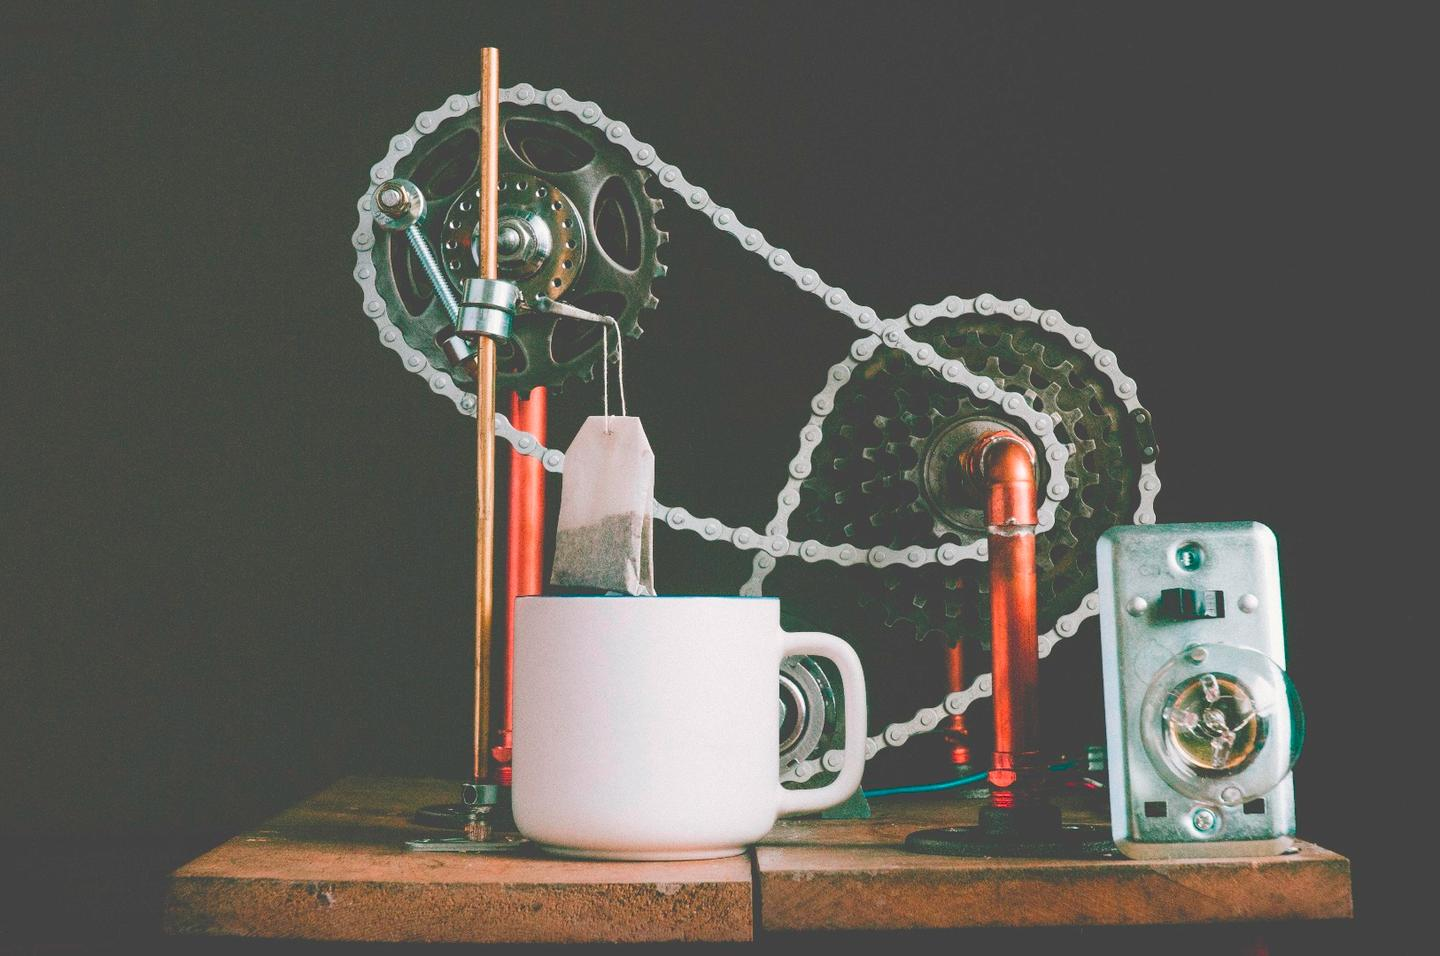 The automated teabag dunking machine is said to have been inspired by the breakfast-making machine in the kids classic, Chitty Chitty Bang Bang